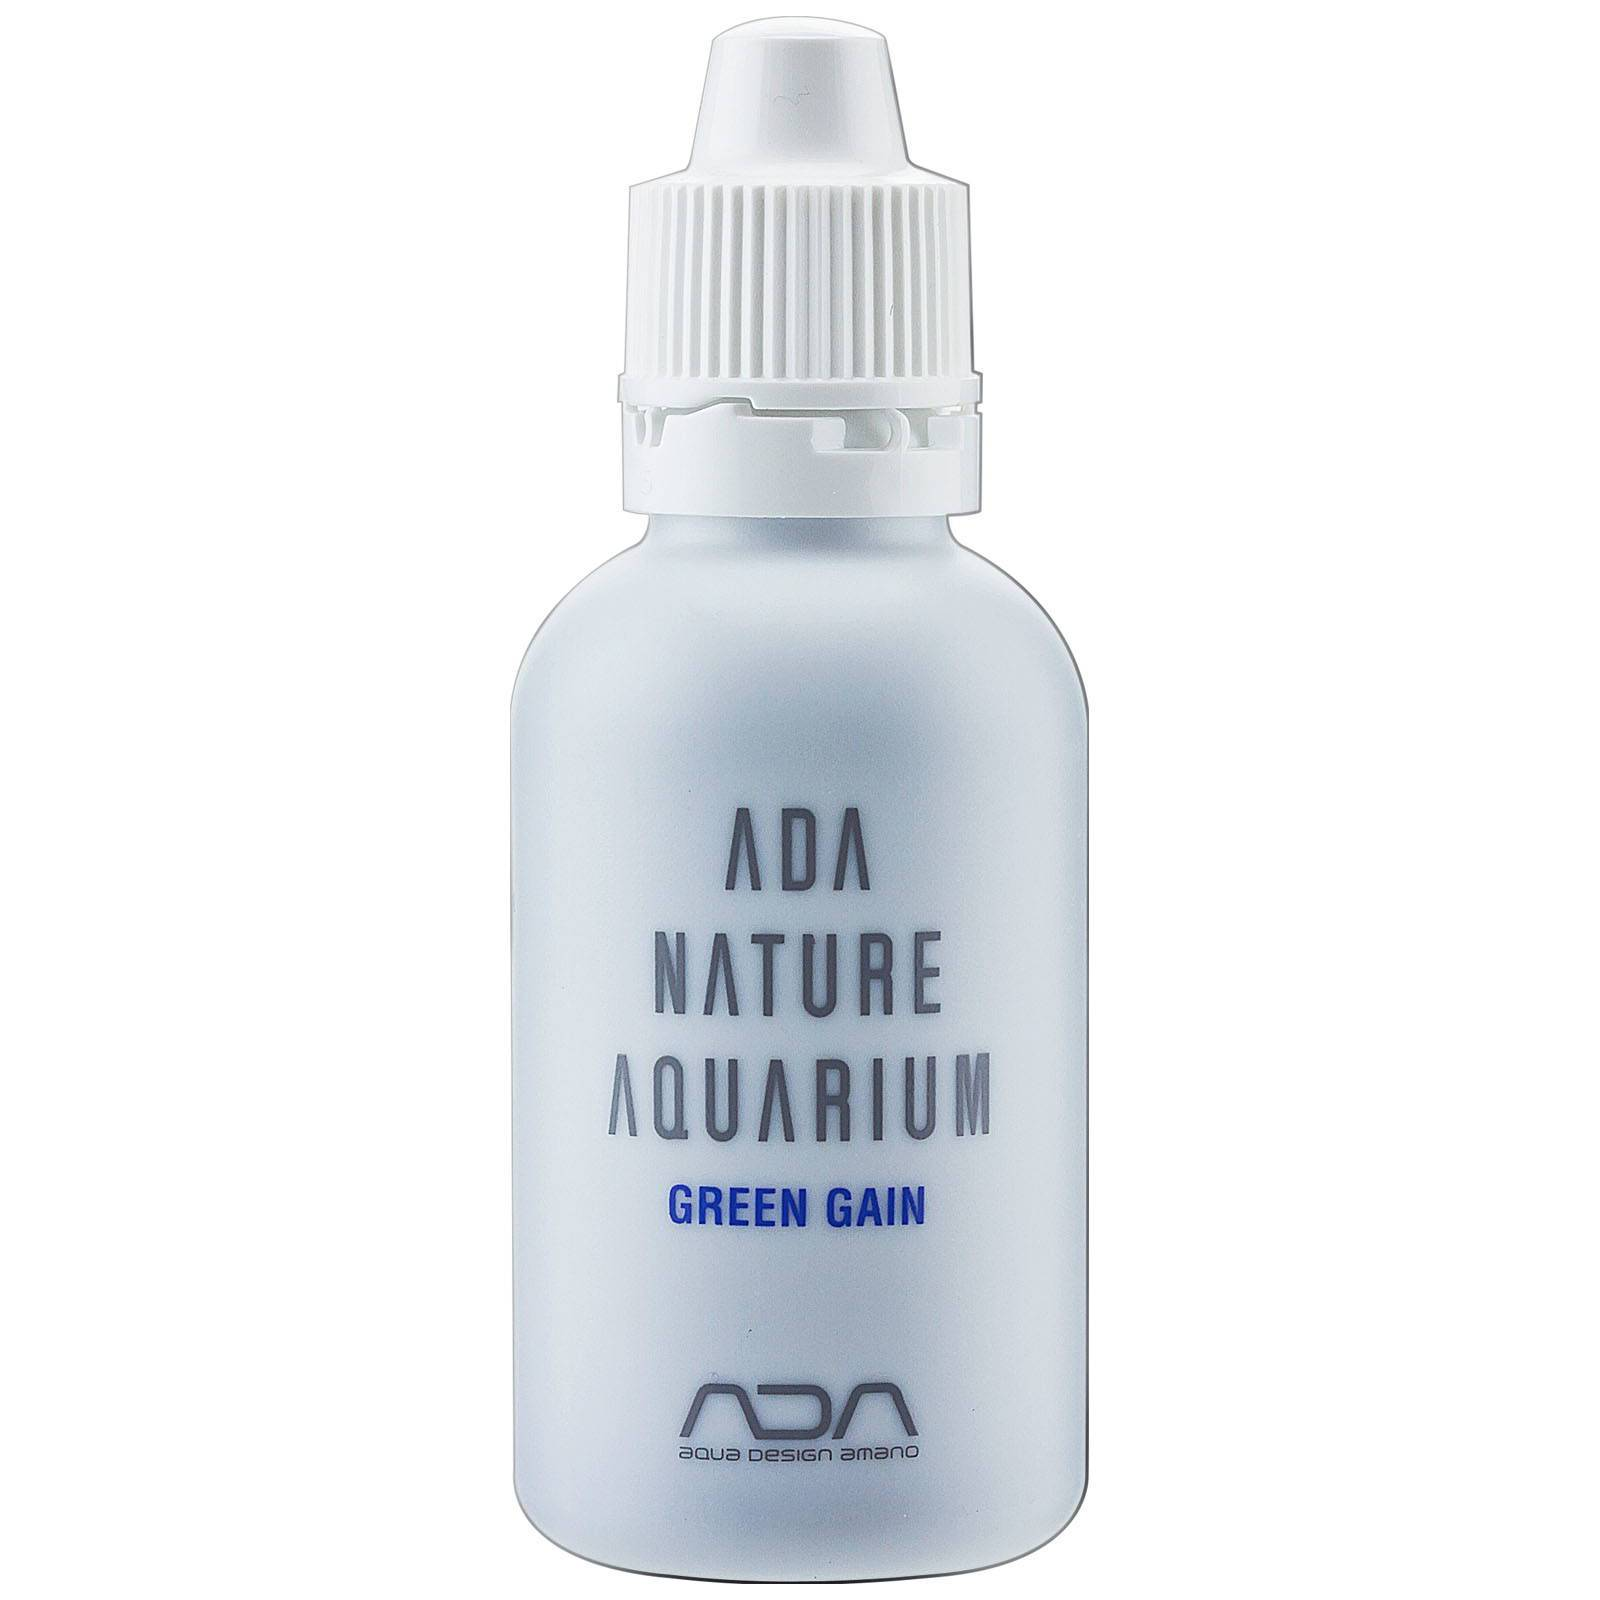 ADA - Green Gain